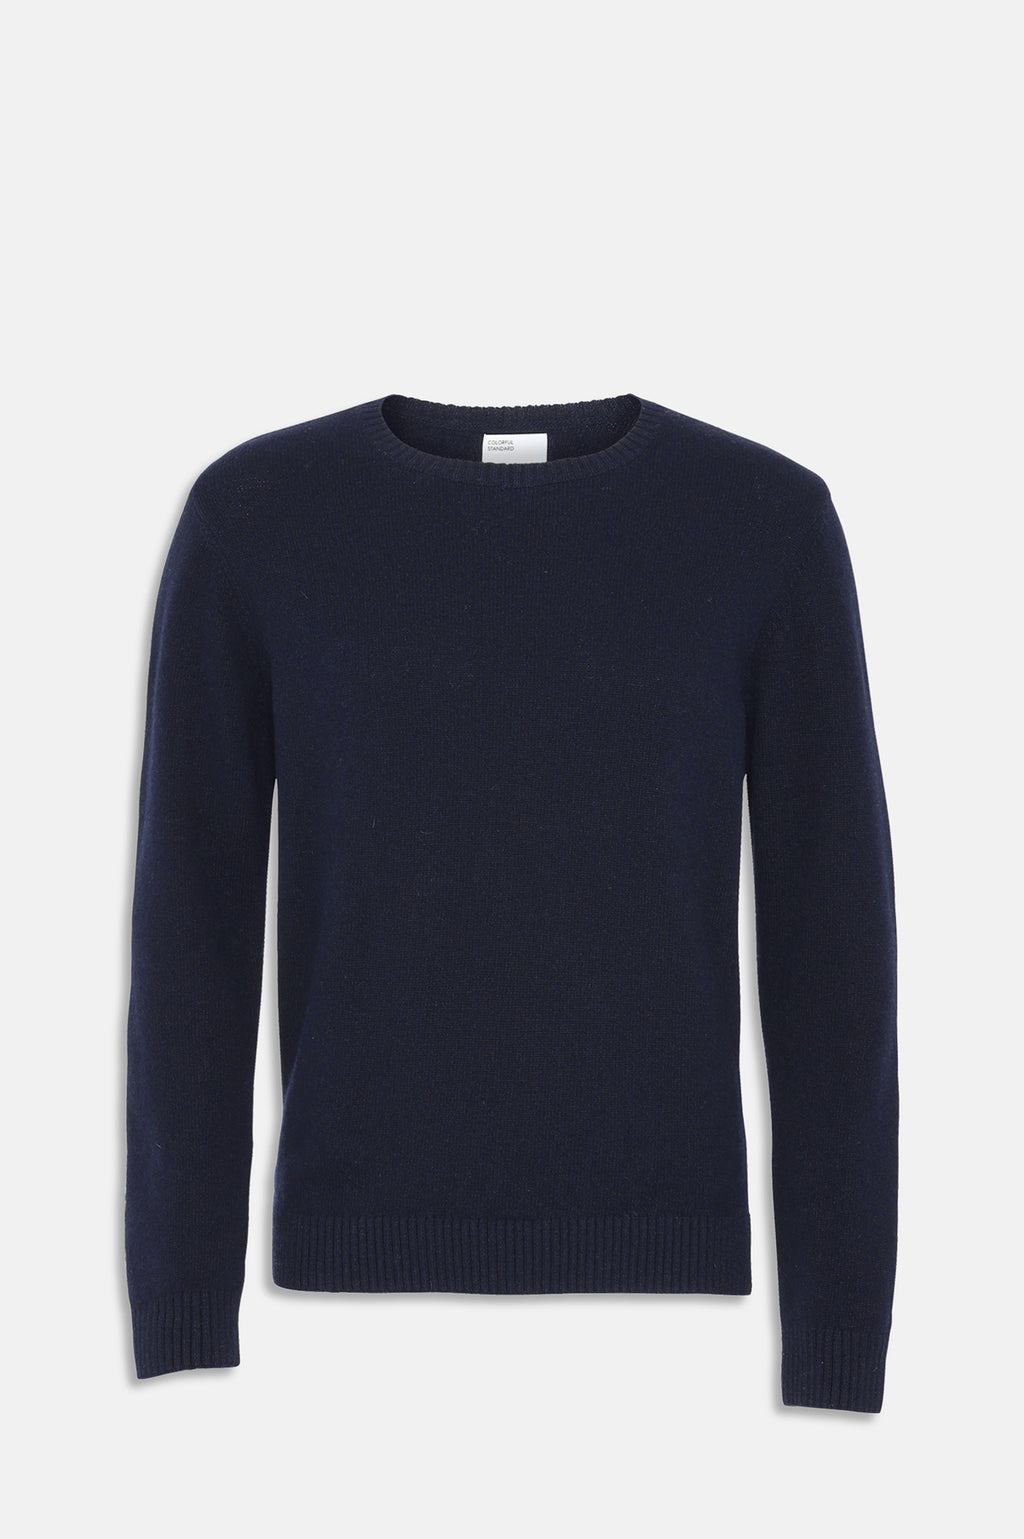 ReMade Wool Crewneck Jumper in Navy Blue